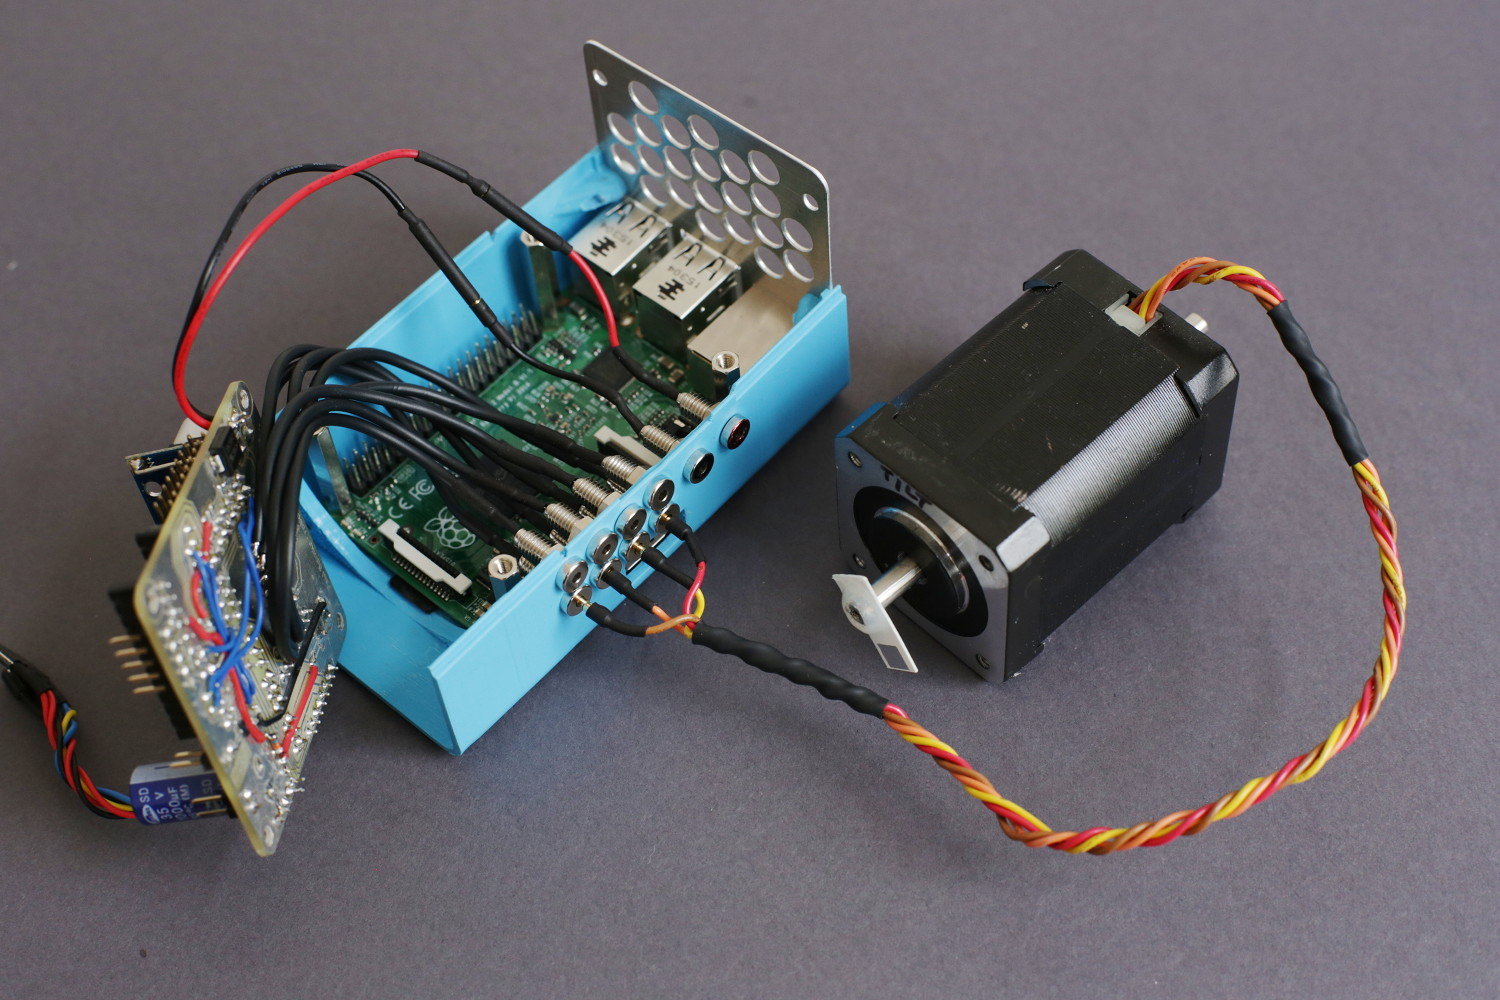 Once you found out your stepper motors color coding for the windings, plug it into the connectors. The order of the connectors is A1 A2 B1 B2 where A and B are the windings and 1 and 2 are the two poles of each winding.